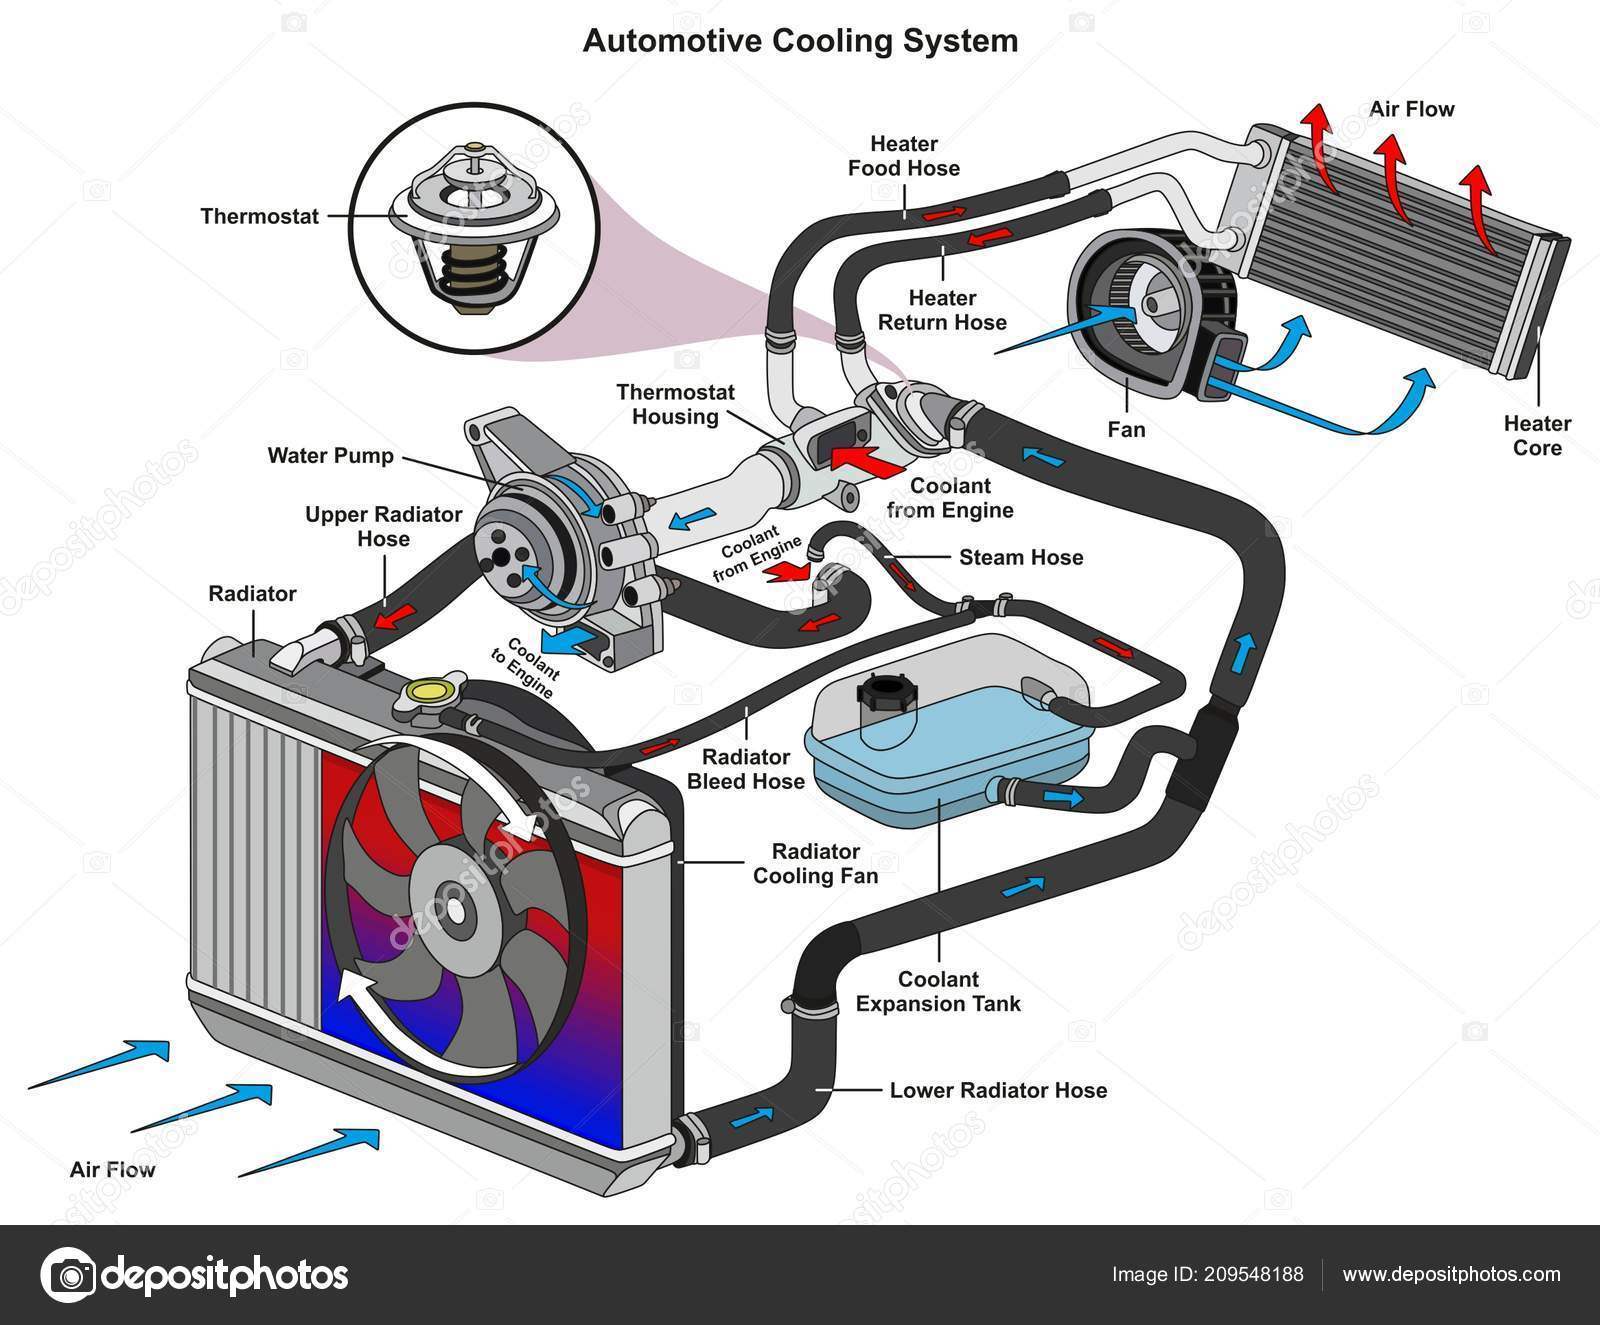 hight resolution of automotive cooling system infographic diagram showing process all parts included stock vector